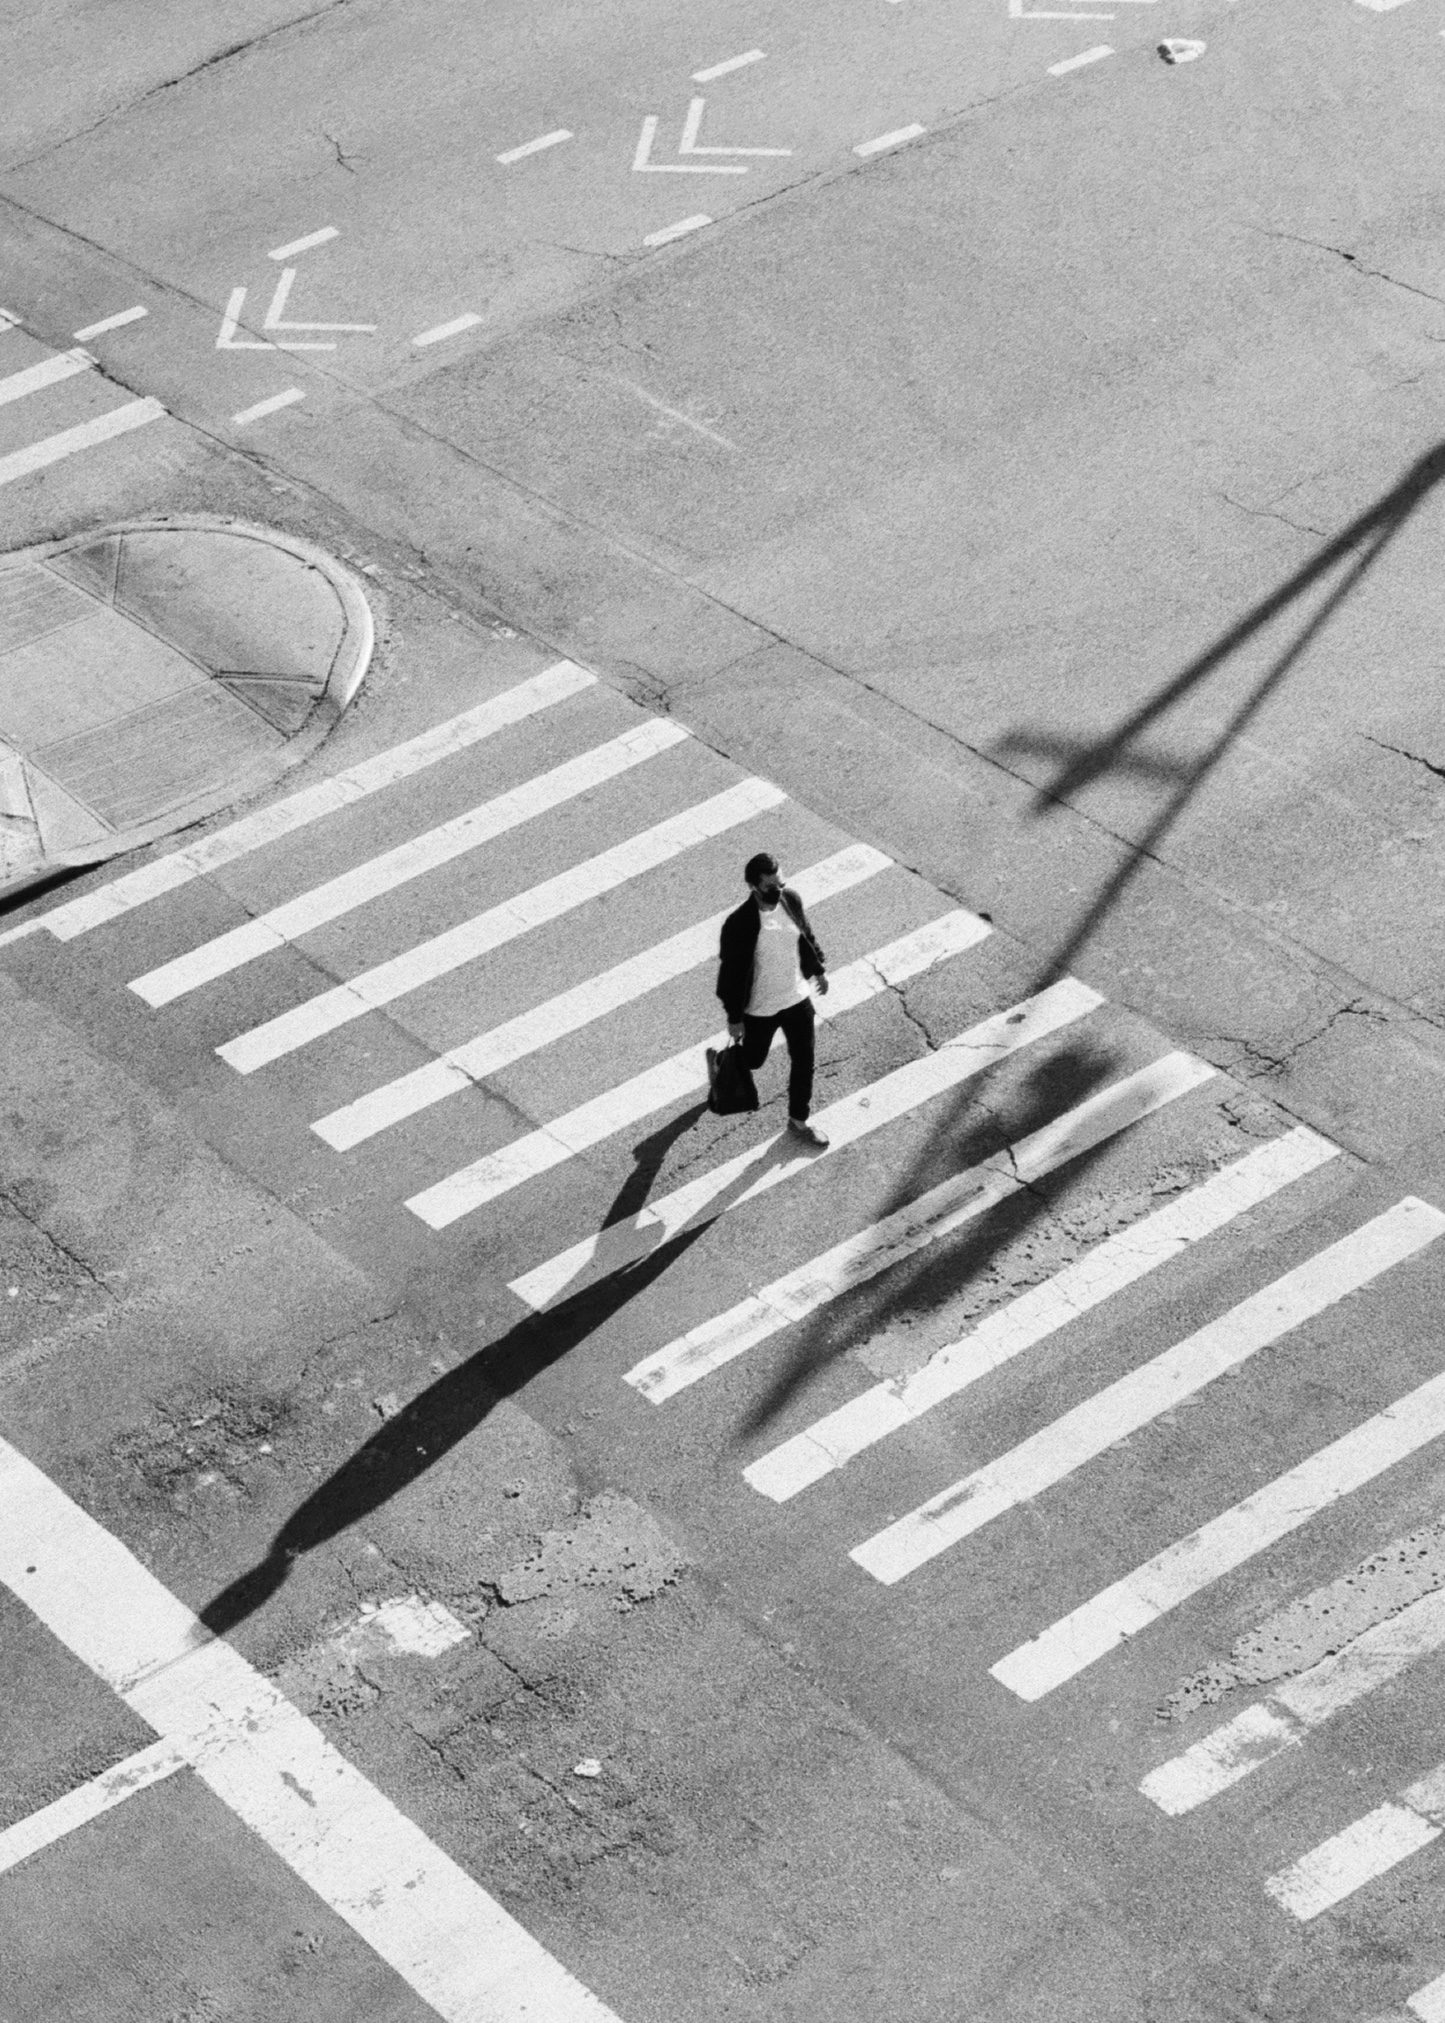 Pedestrian on zebra crossing shot on ILFORD HP5 plus black and white film by Louis Kassam